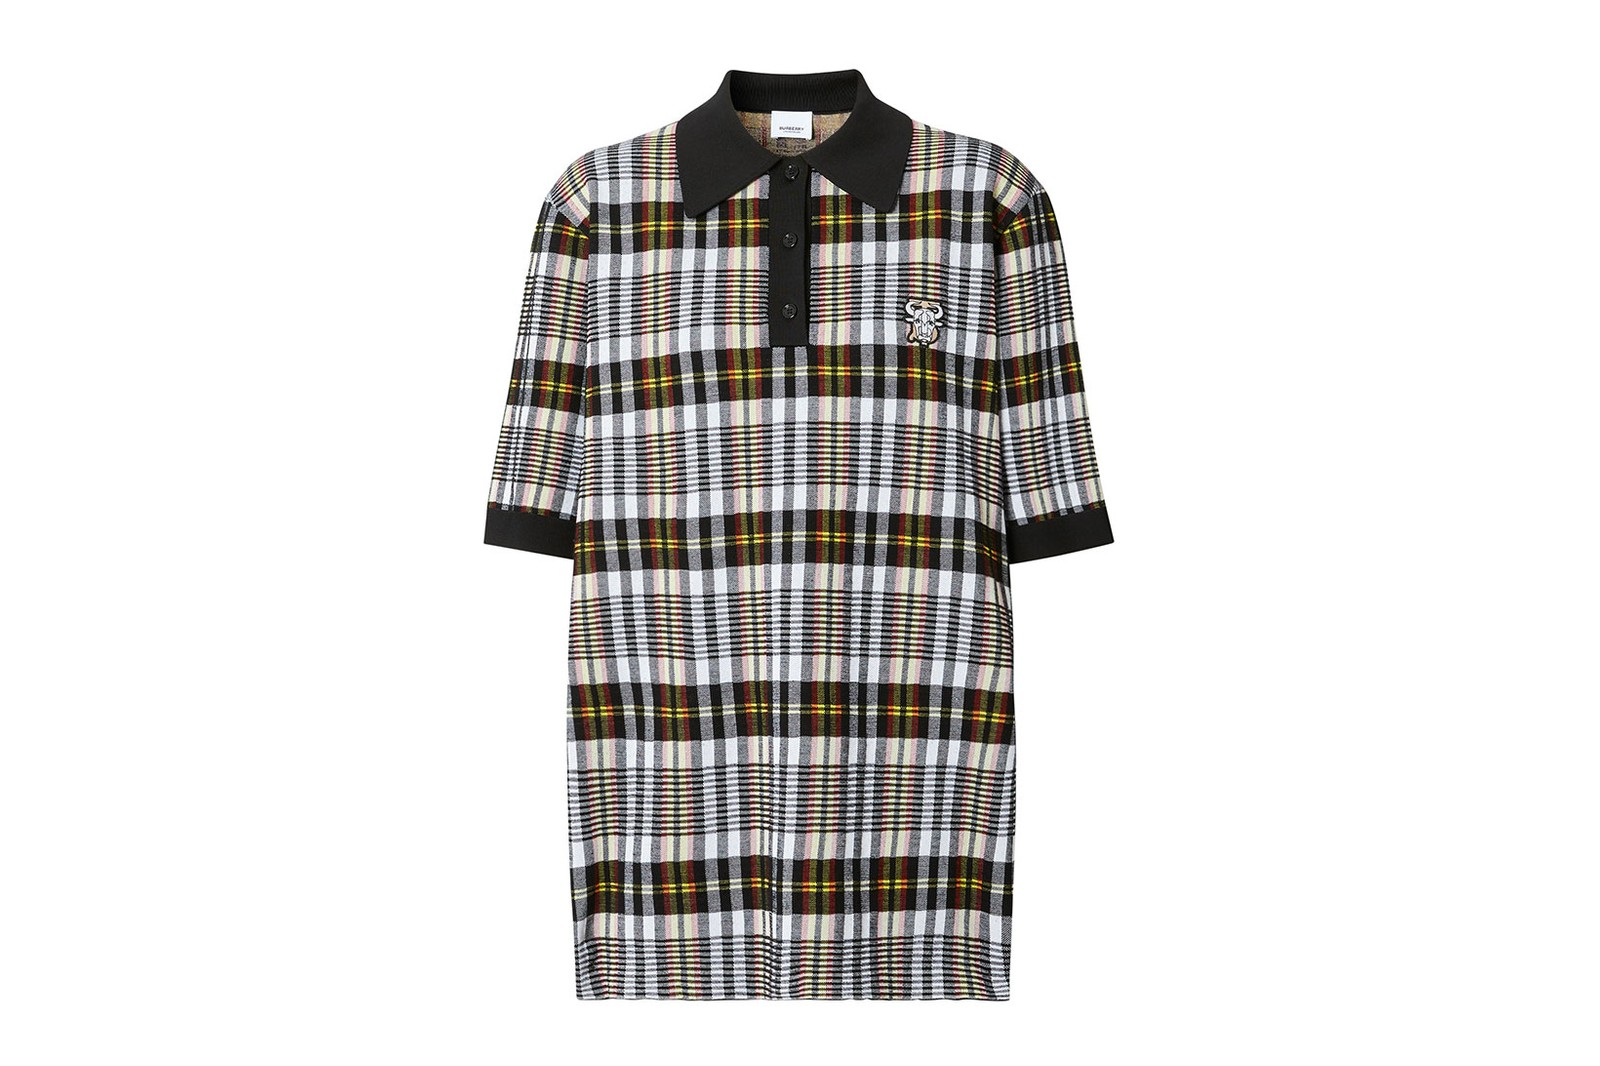 burberry lunar new year of the ox 2021 campaign collection plaid check coats handbags accessories release